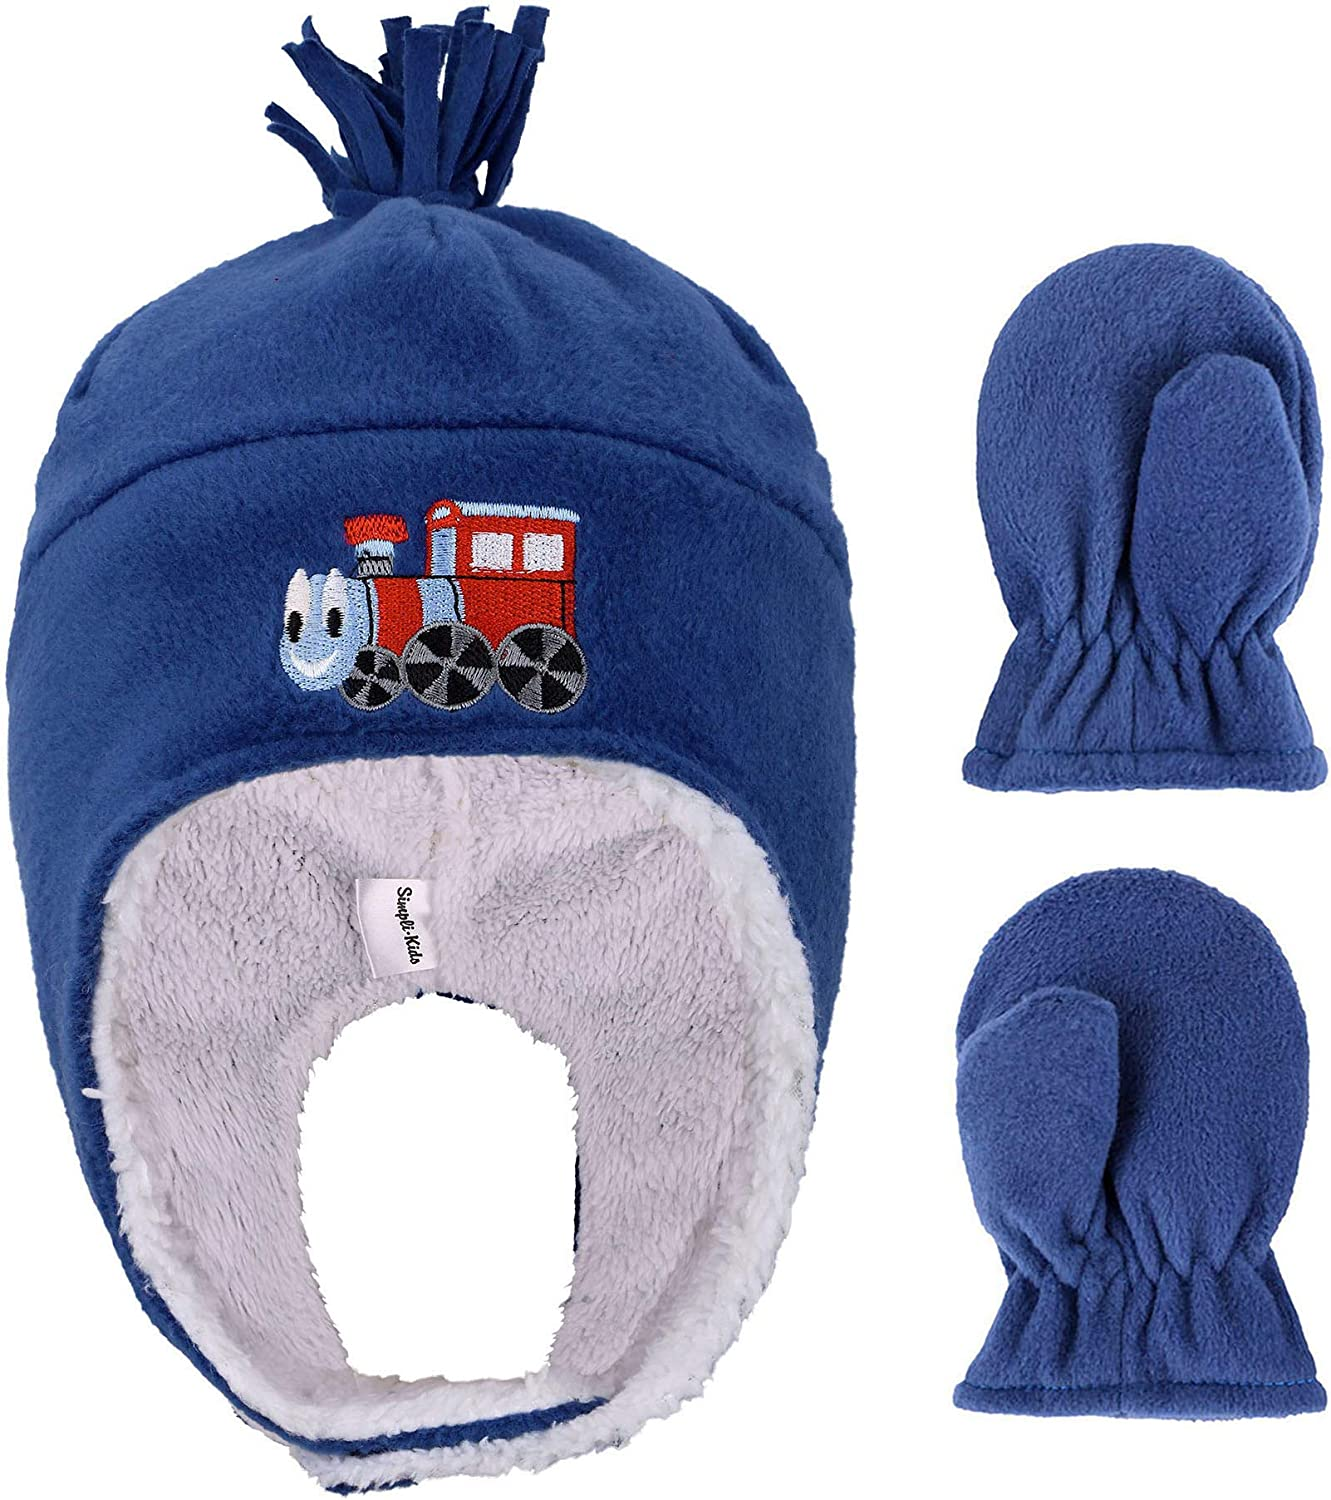 Kids Toddlers Polar Fleece with Embroidered Winter and High material Set Hat New product!! M